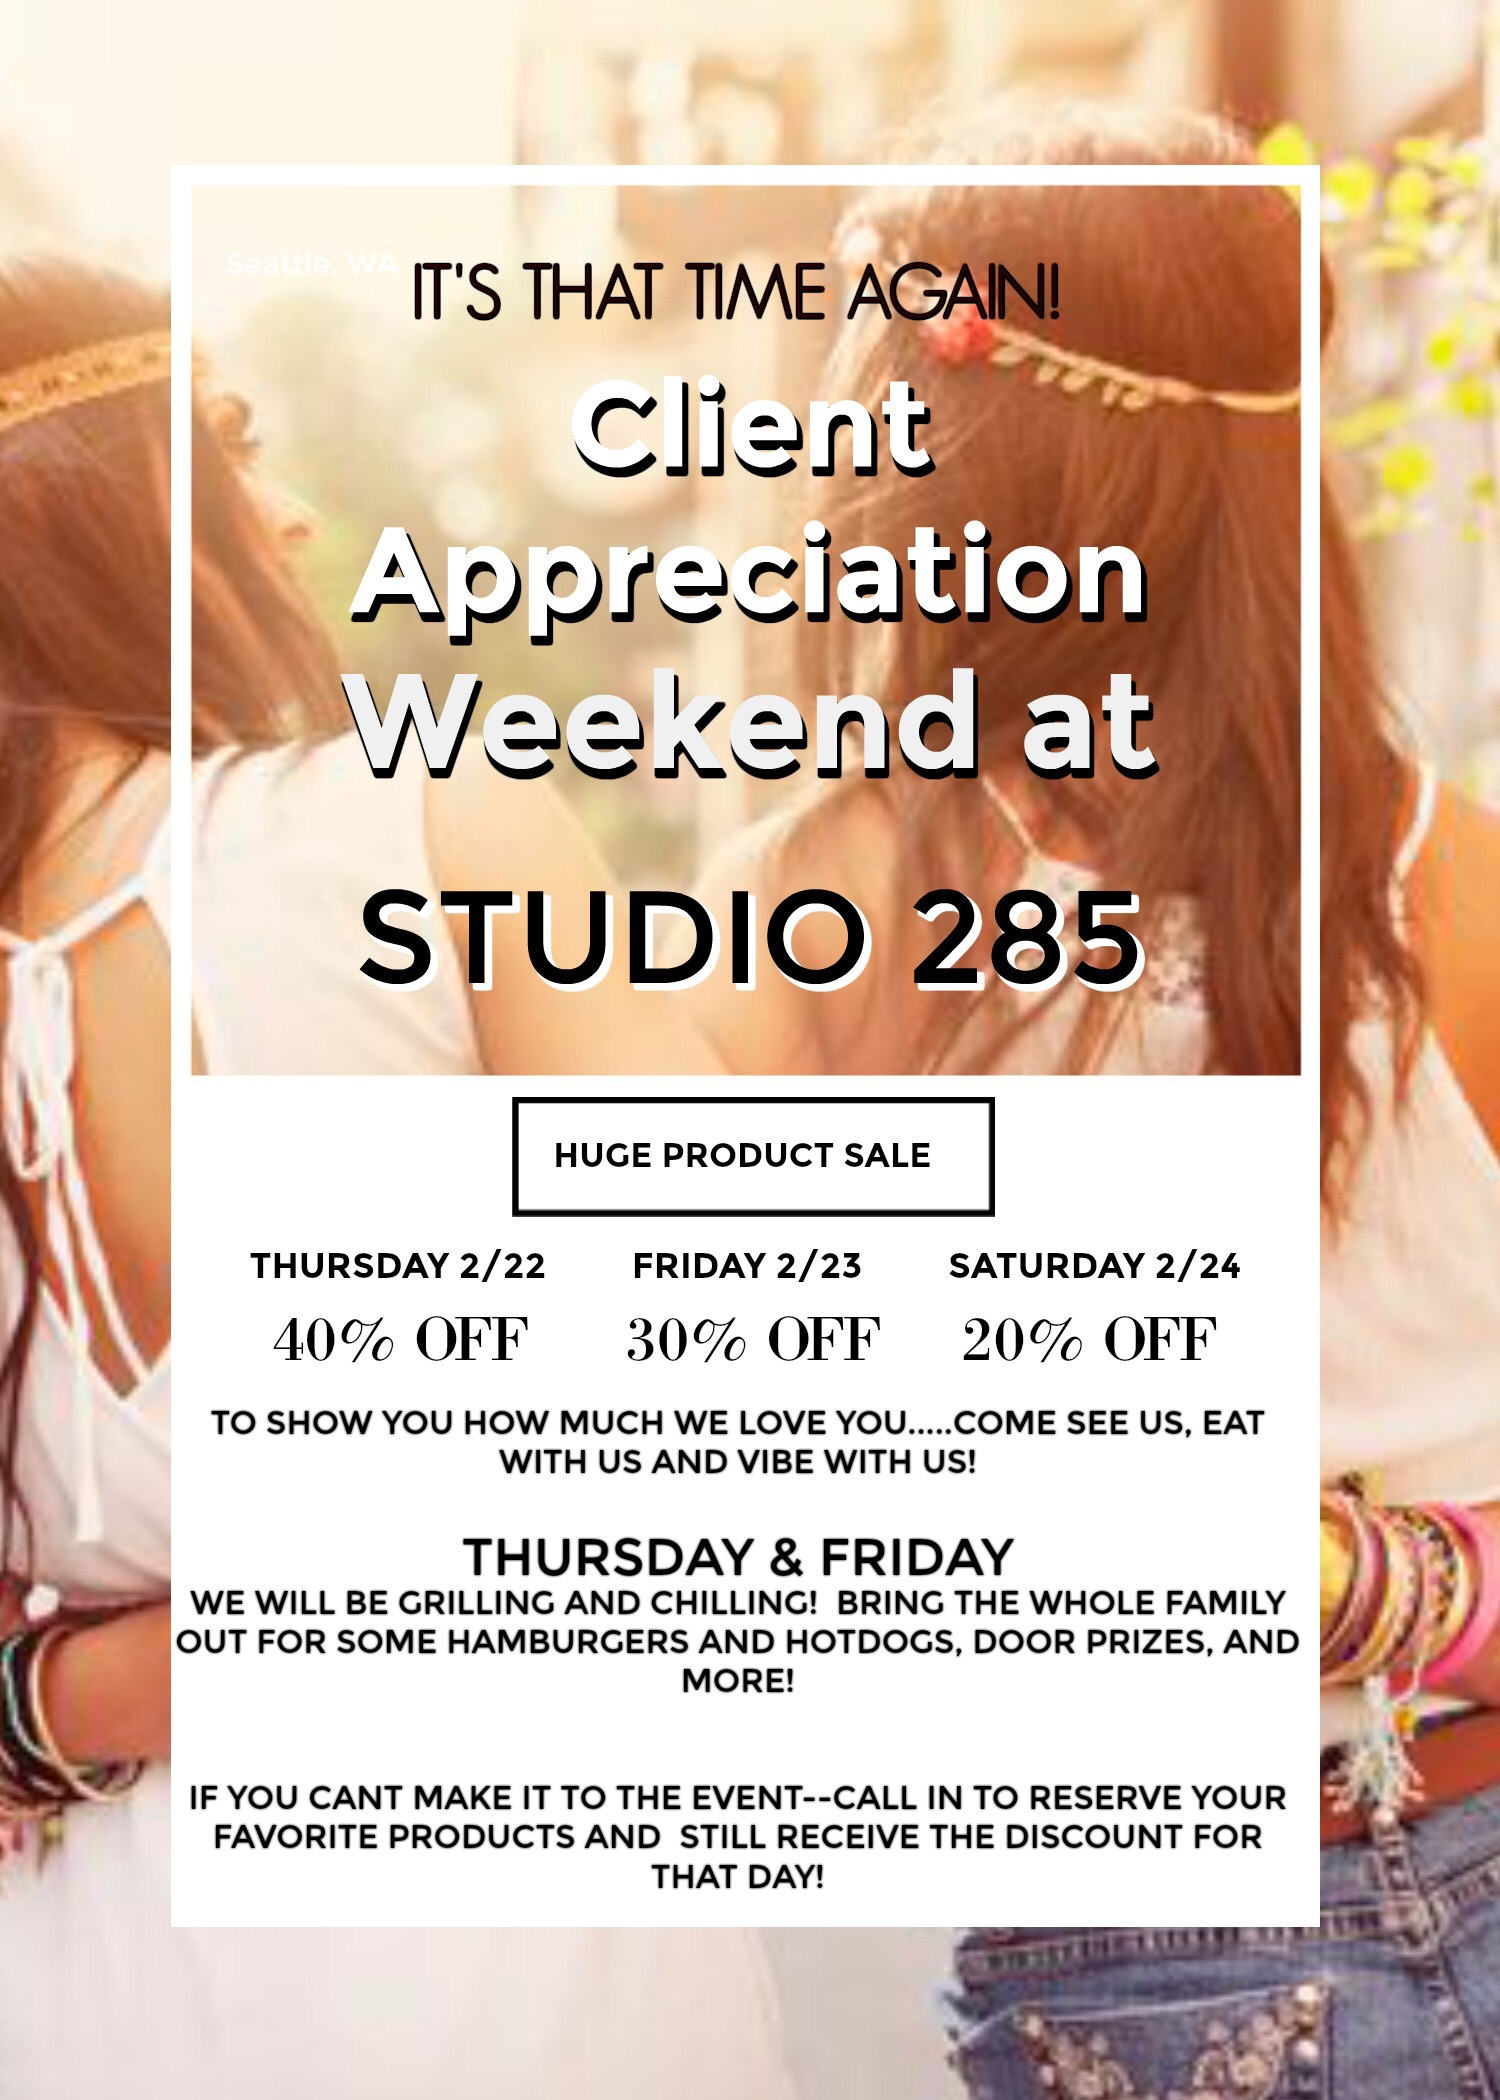 Studio 285 evans GA client appreciation